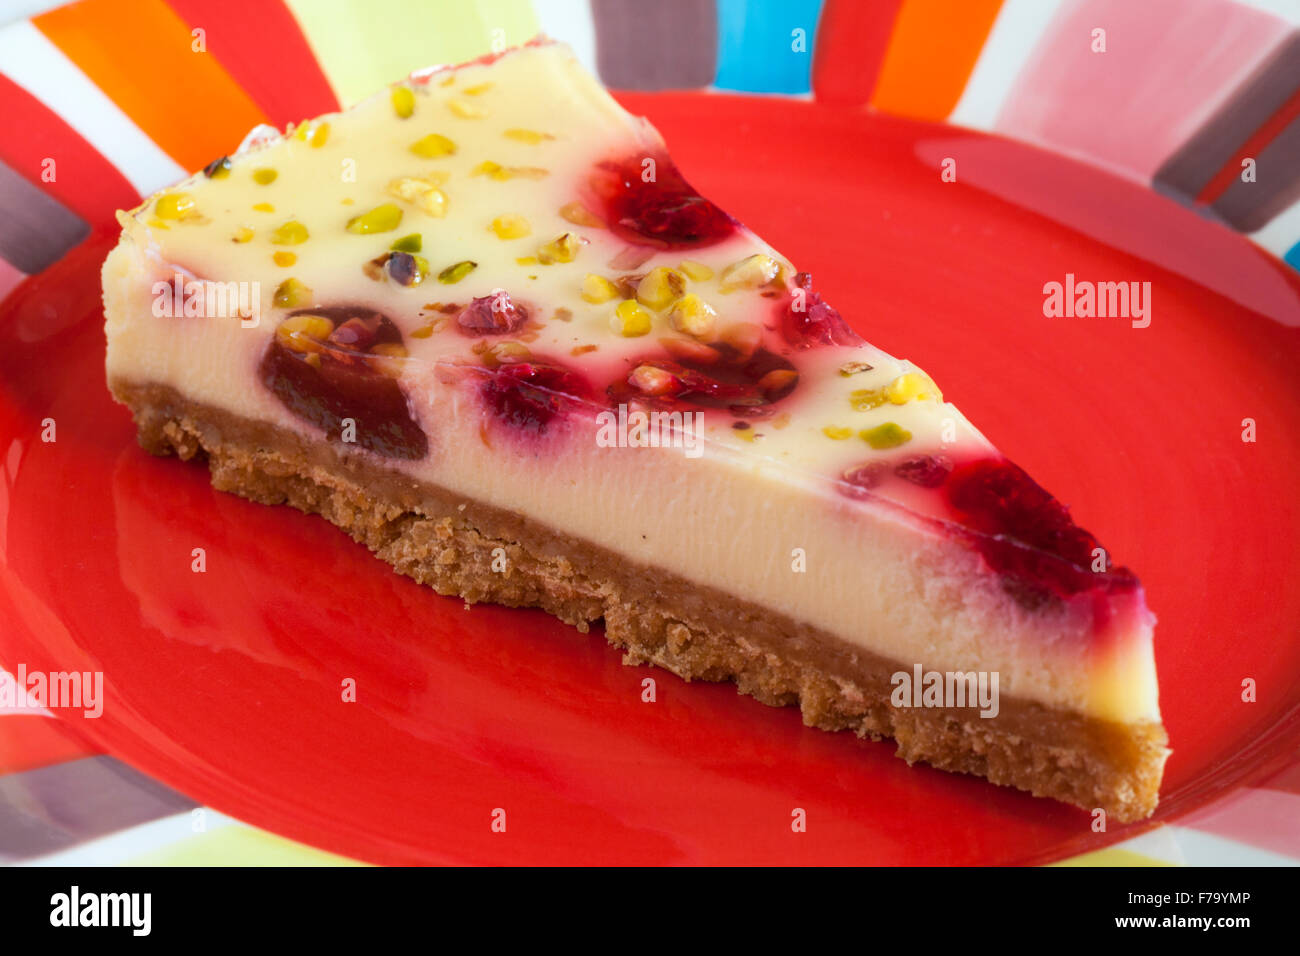 Tesco finest Raspberry & Pistachio cheesecake slice on red colourful plate - Stock Image